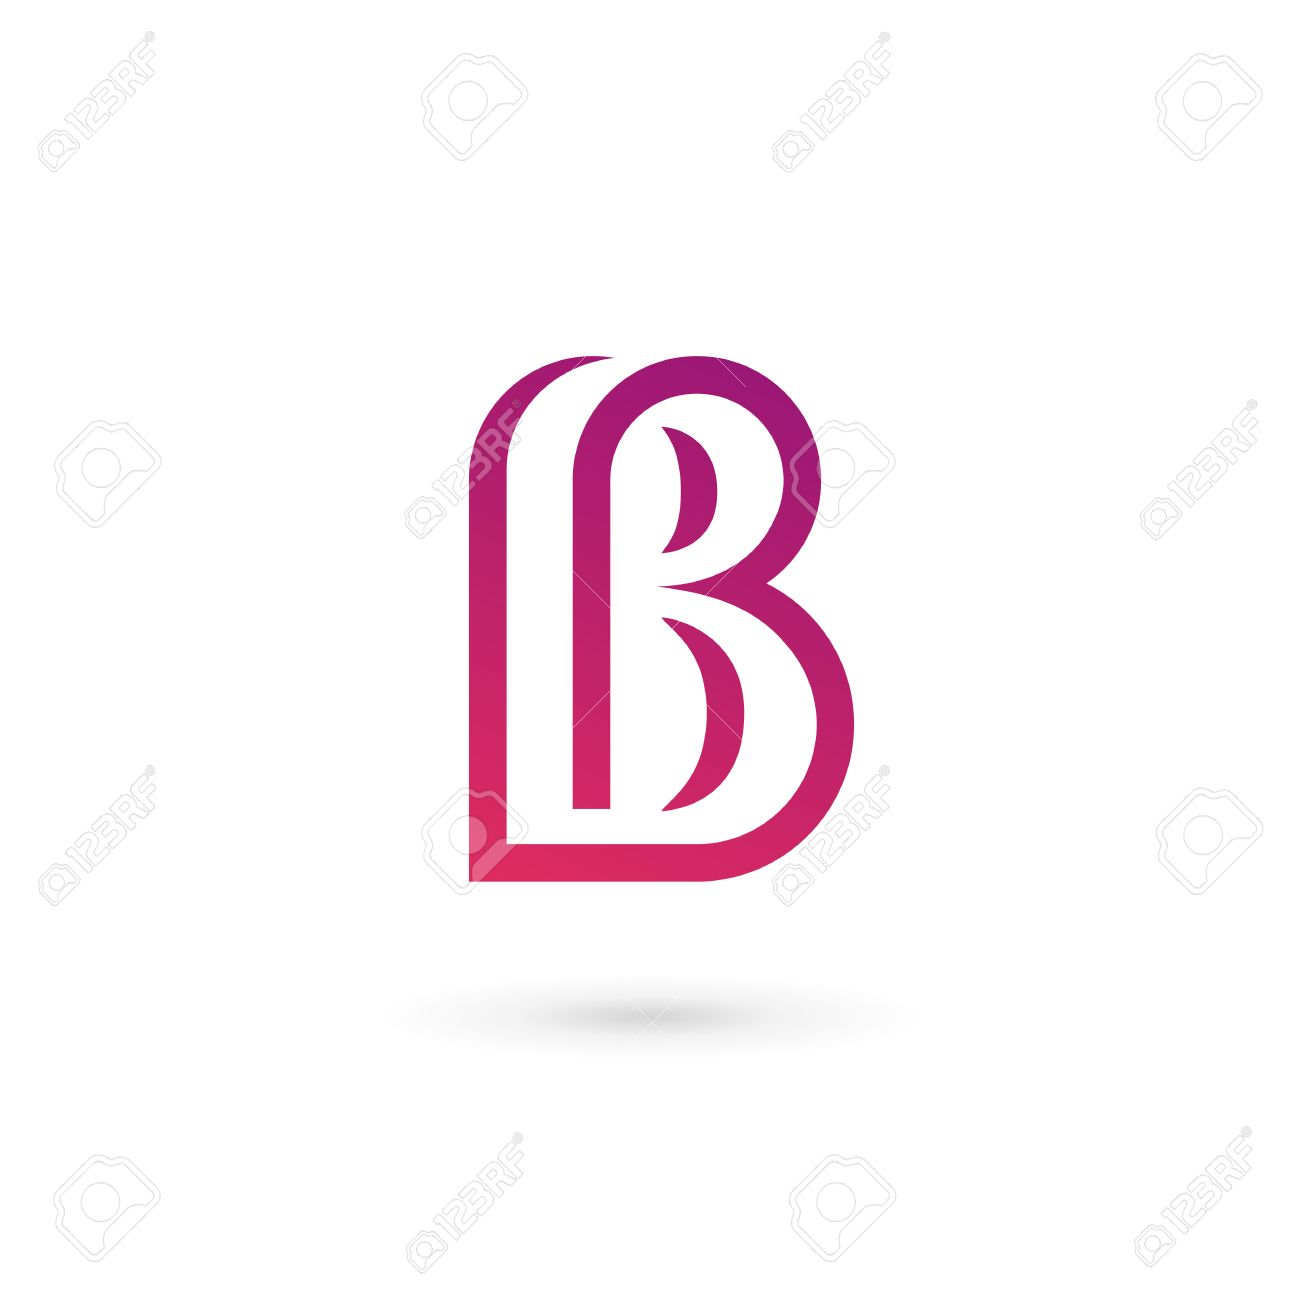 letter b icon design template elements stock vector 35516628